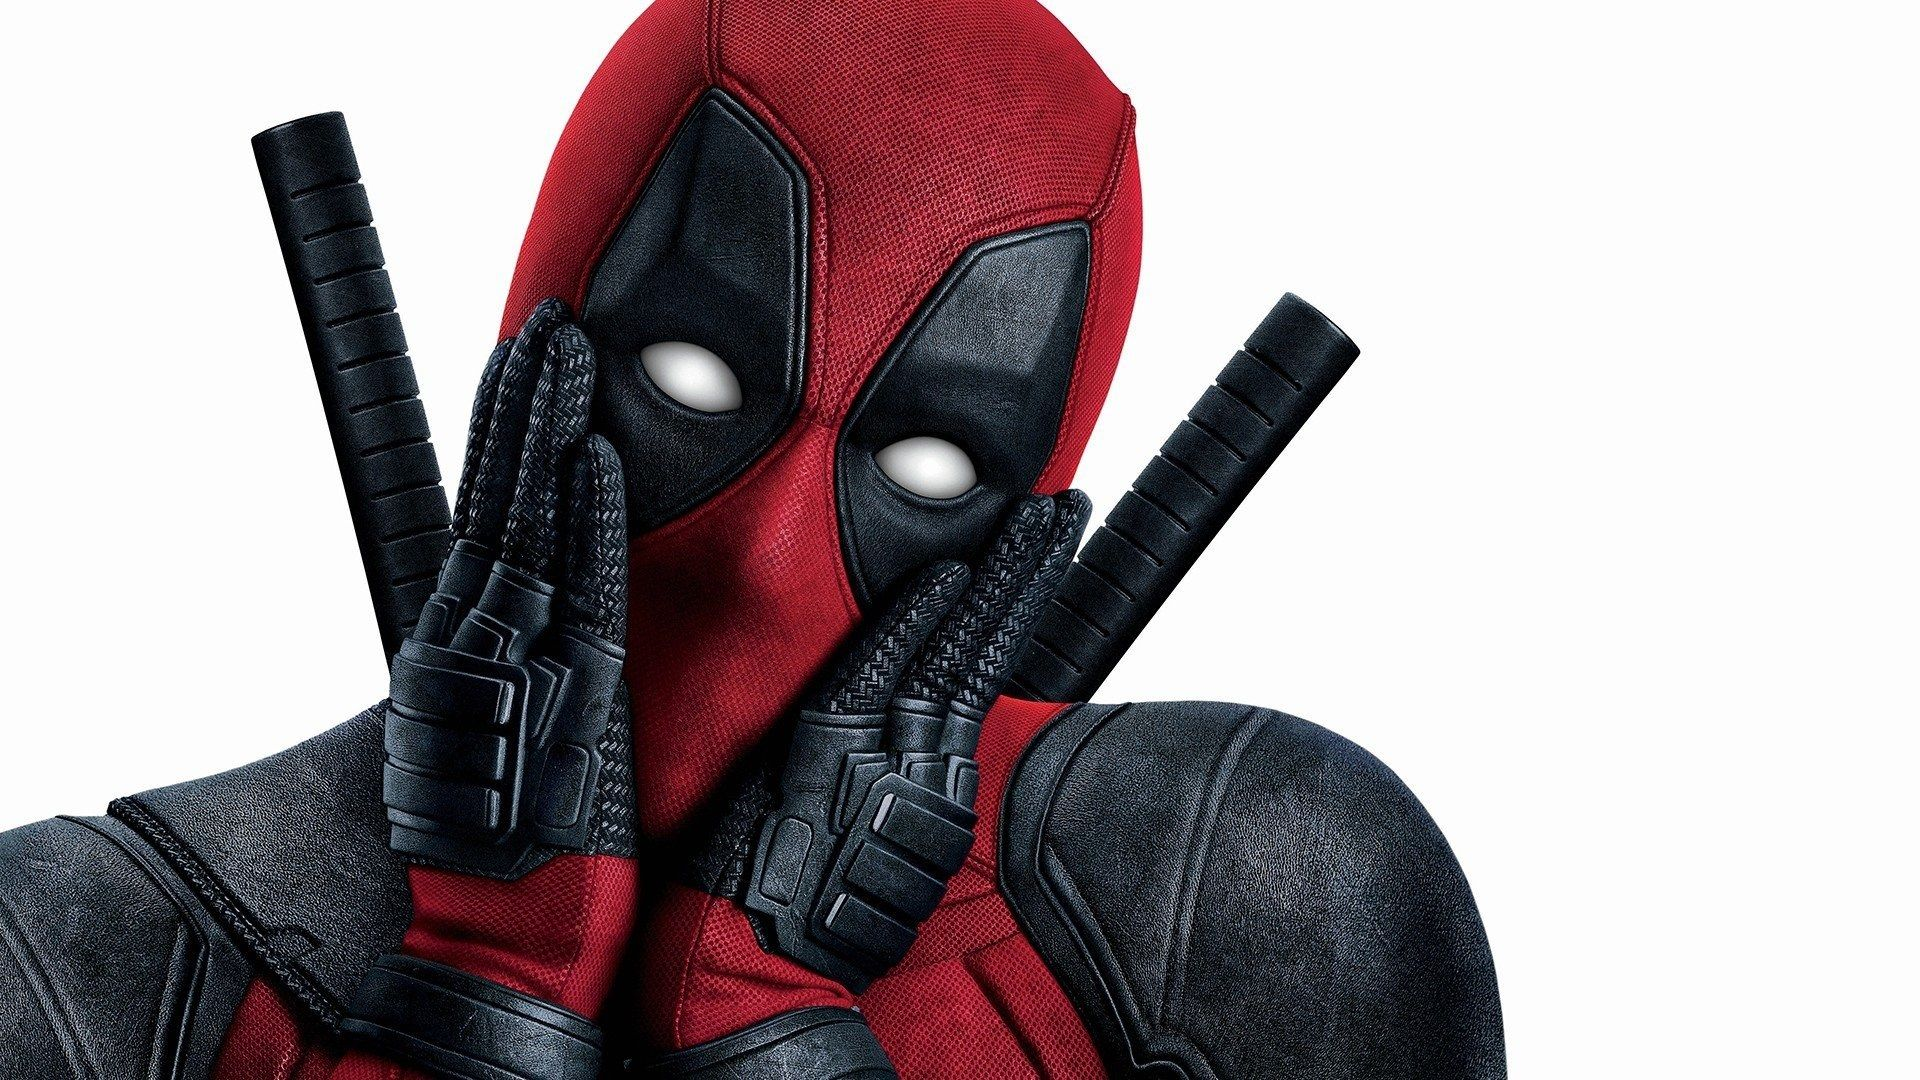 1920x1080 deadpool wallpaper for pc in hd   wallpapers and     1920x1080 deadpool wallpaper for pc in hd